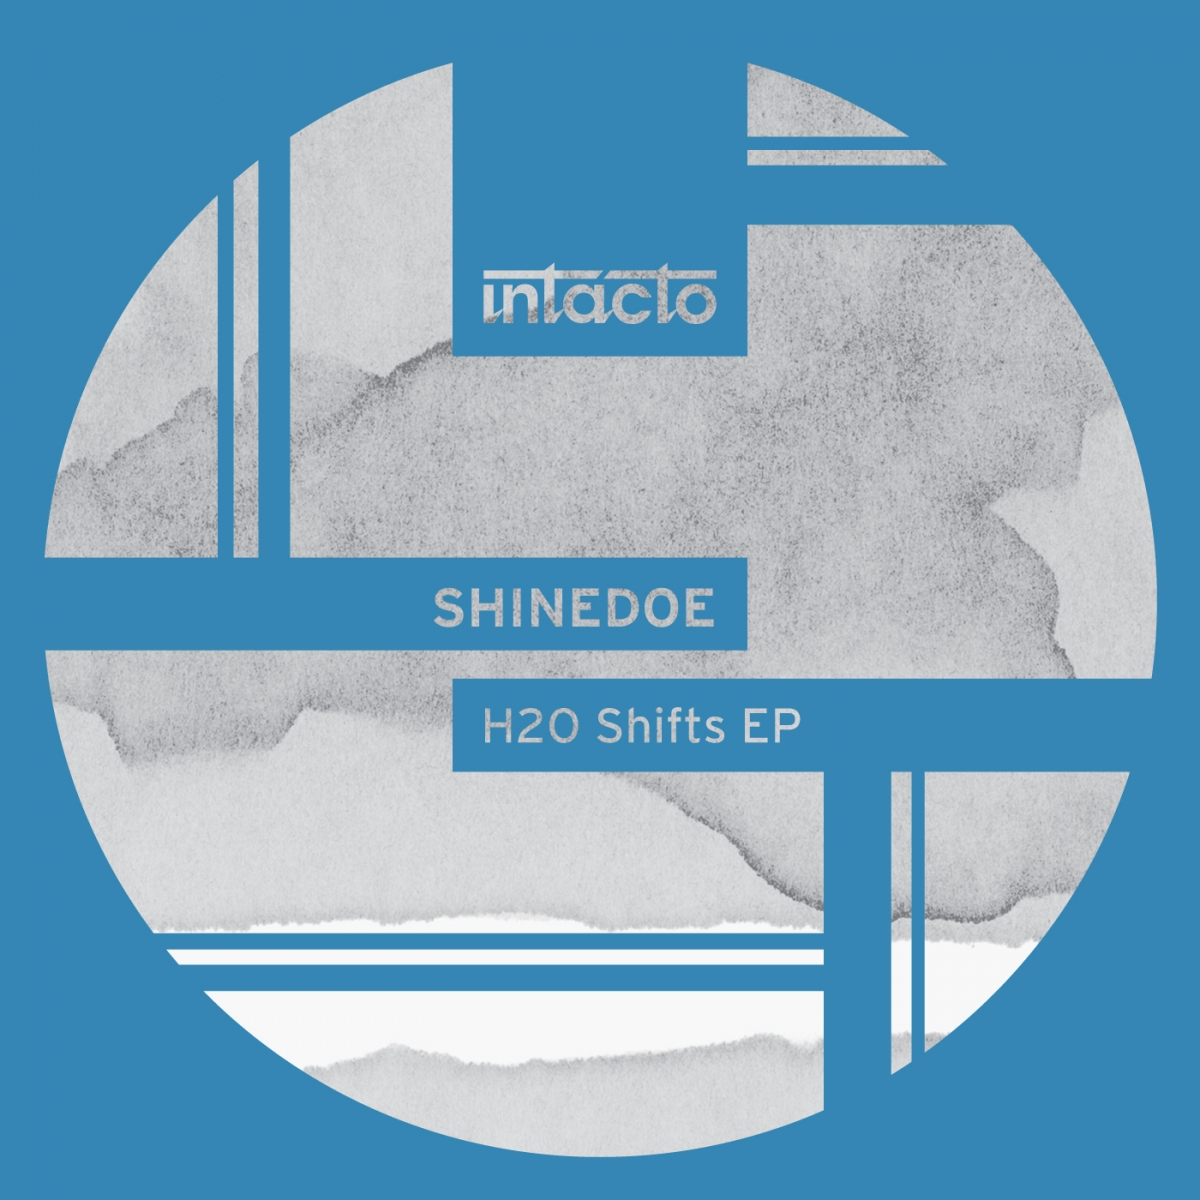 Shinedoe's H2O Shifts EP is out today